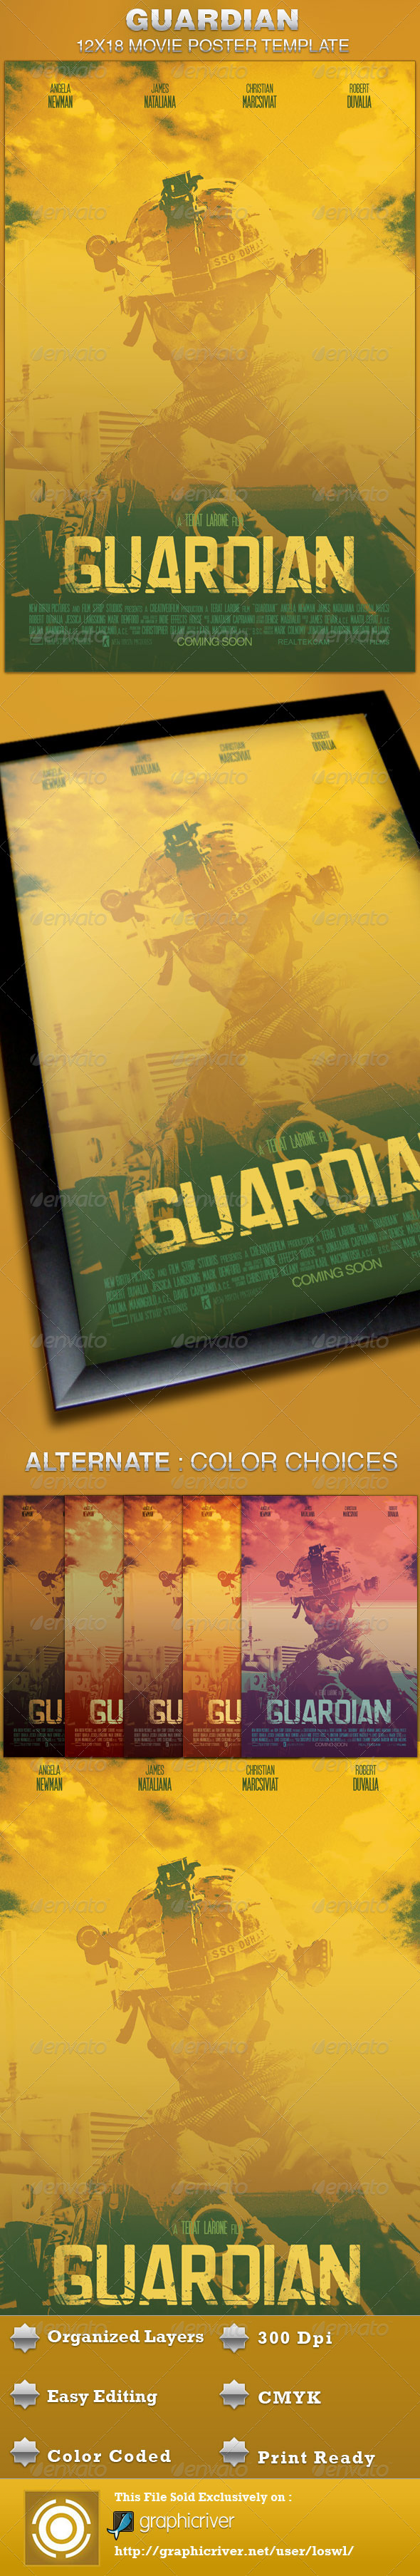 Editable movie poster template